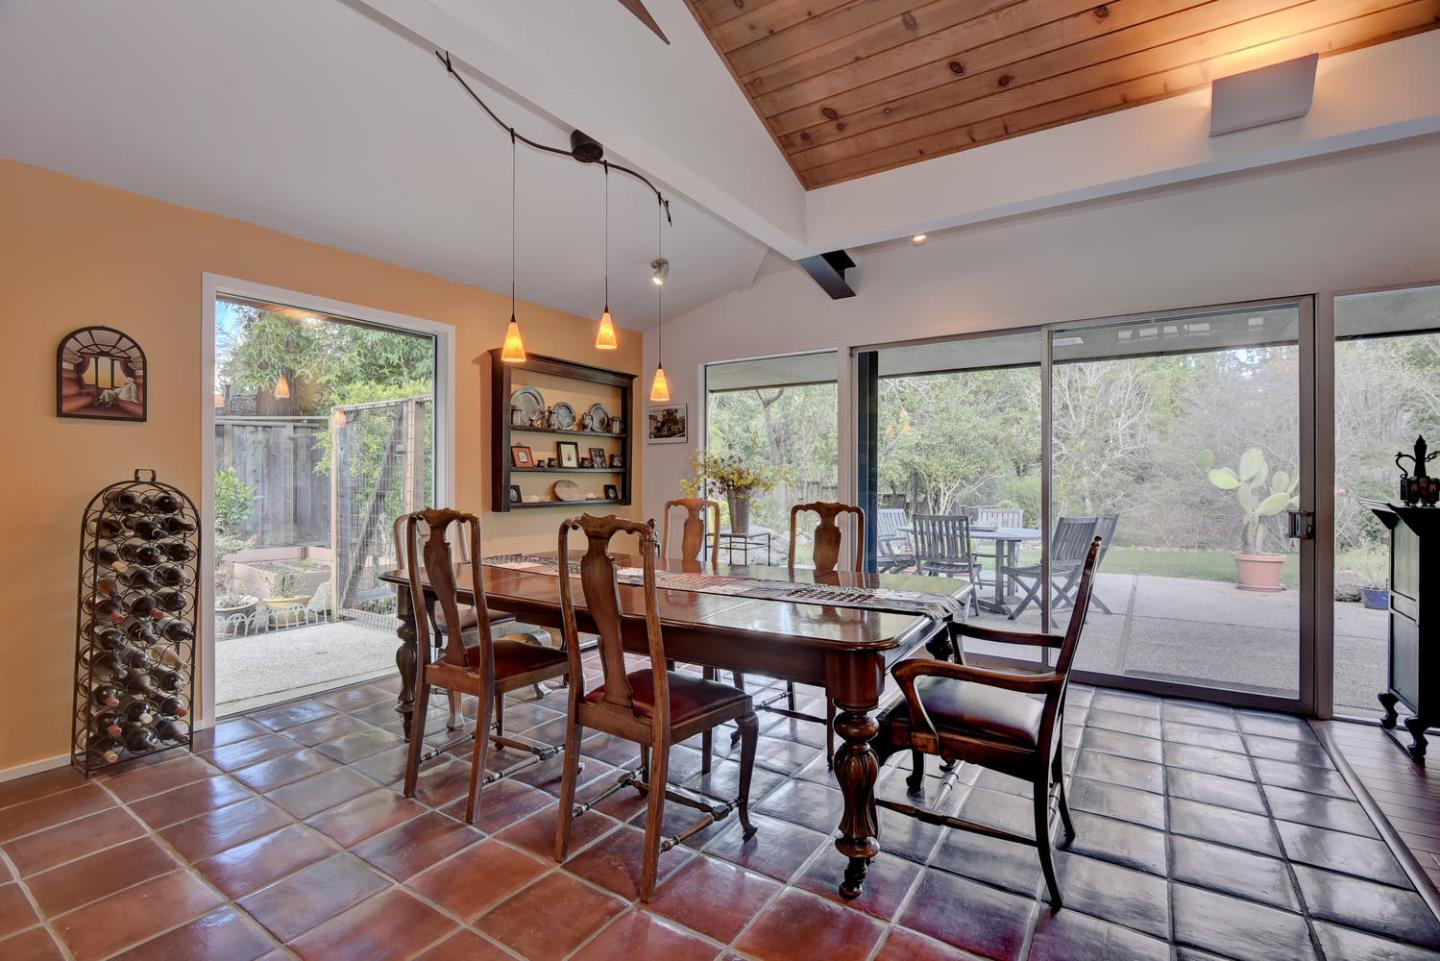 Additional photo for property listing at 1319 Westridge Dr  PORTOLA VALLEY, CALIFORNIA 94028